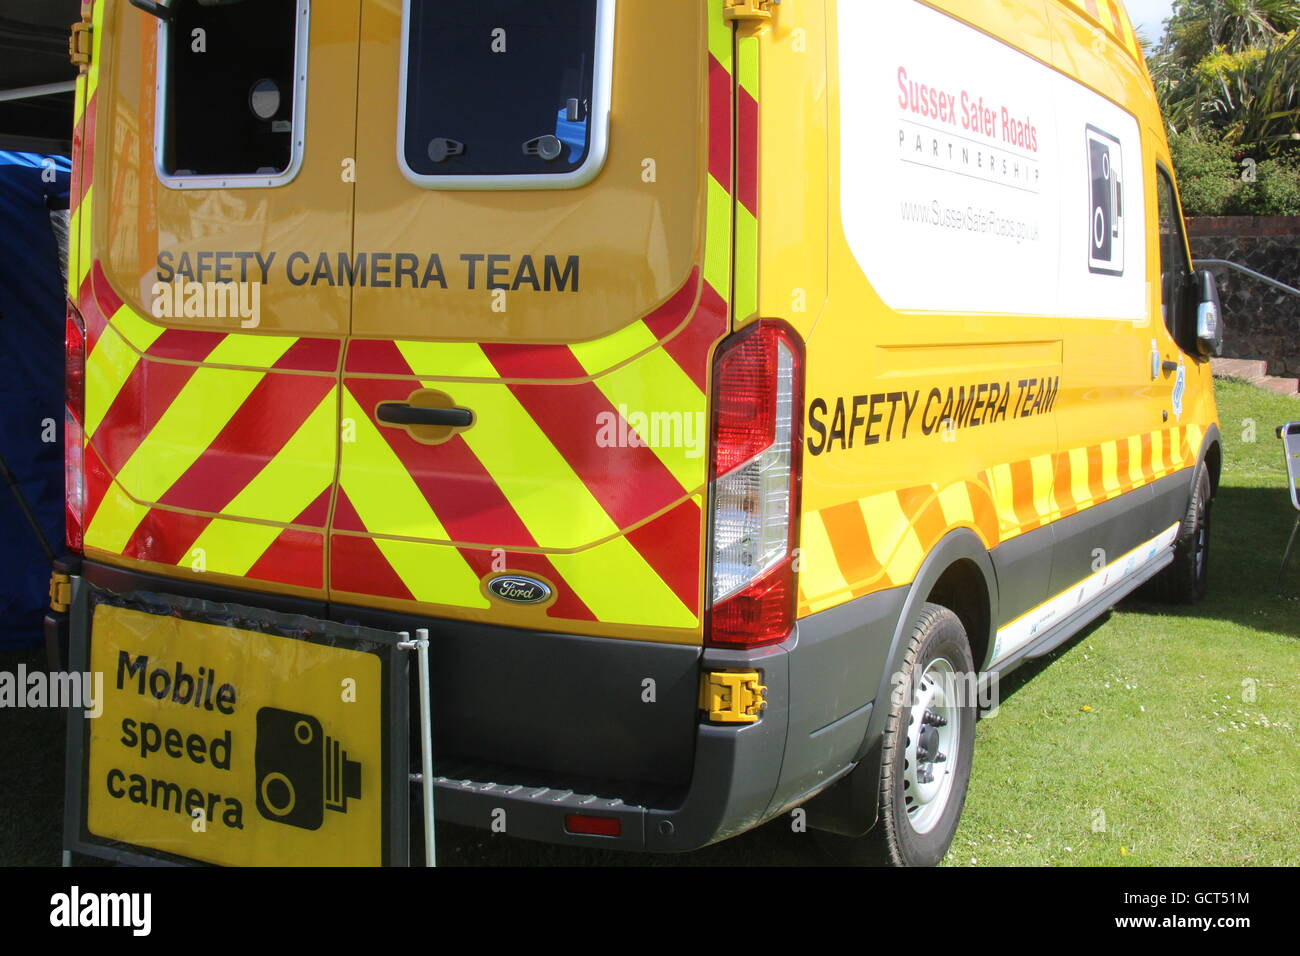 7ab99b67a7 A MOBILE SPEED CAMERA VAN OF THE SUSSEX SAFER ROADS SAFETY CAMERA TEAM -  Stock Image